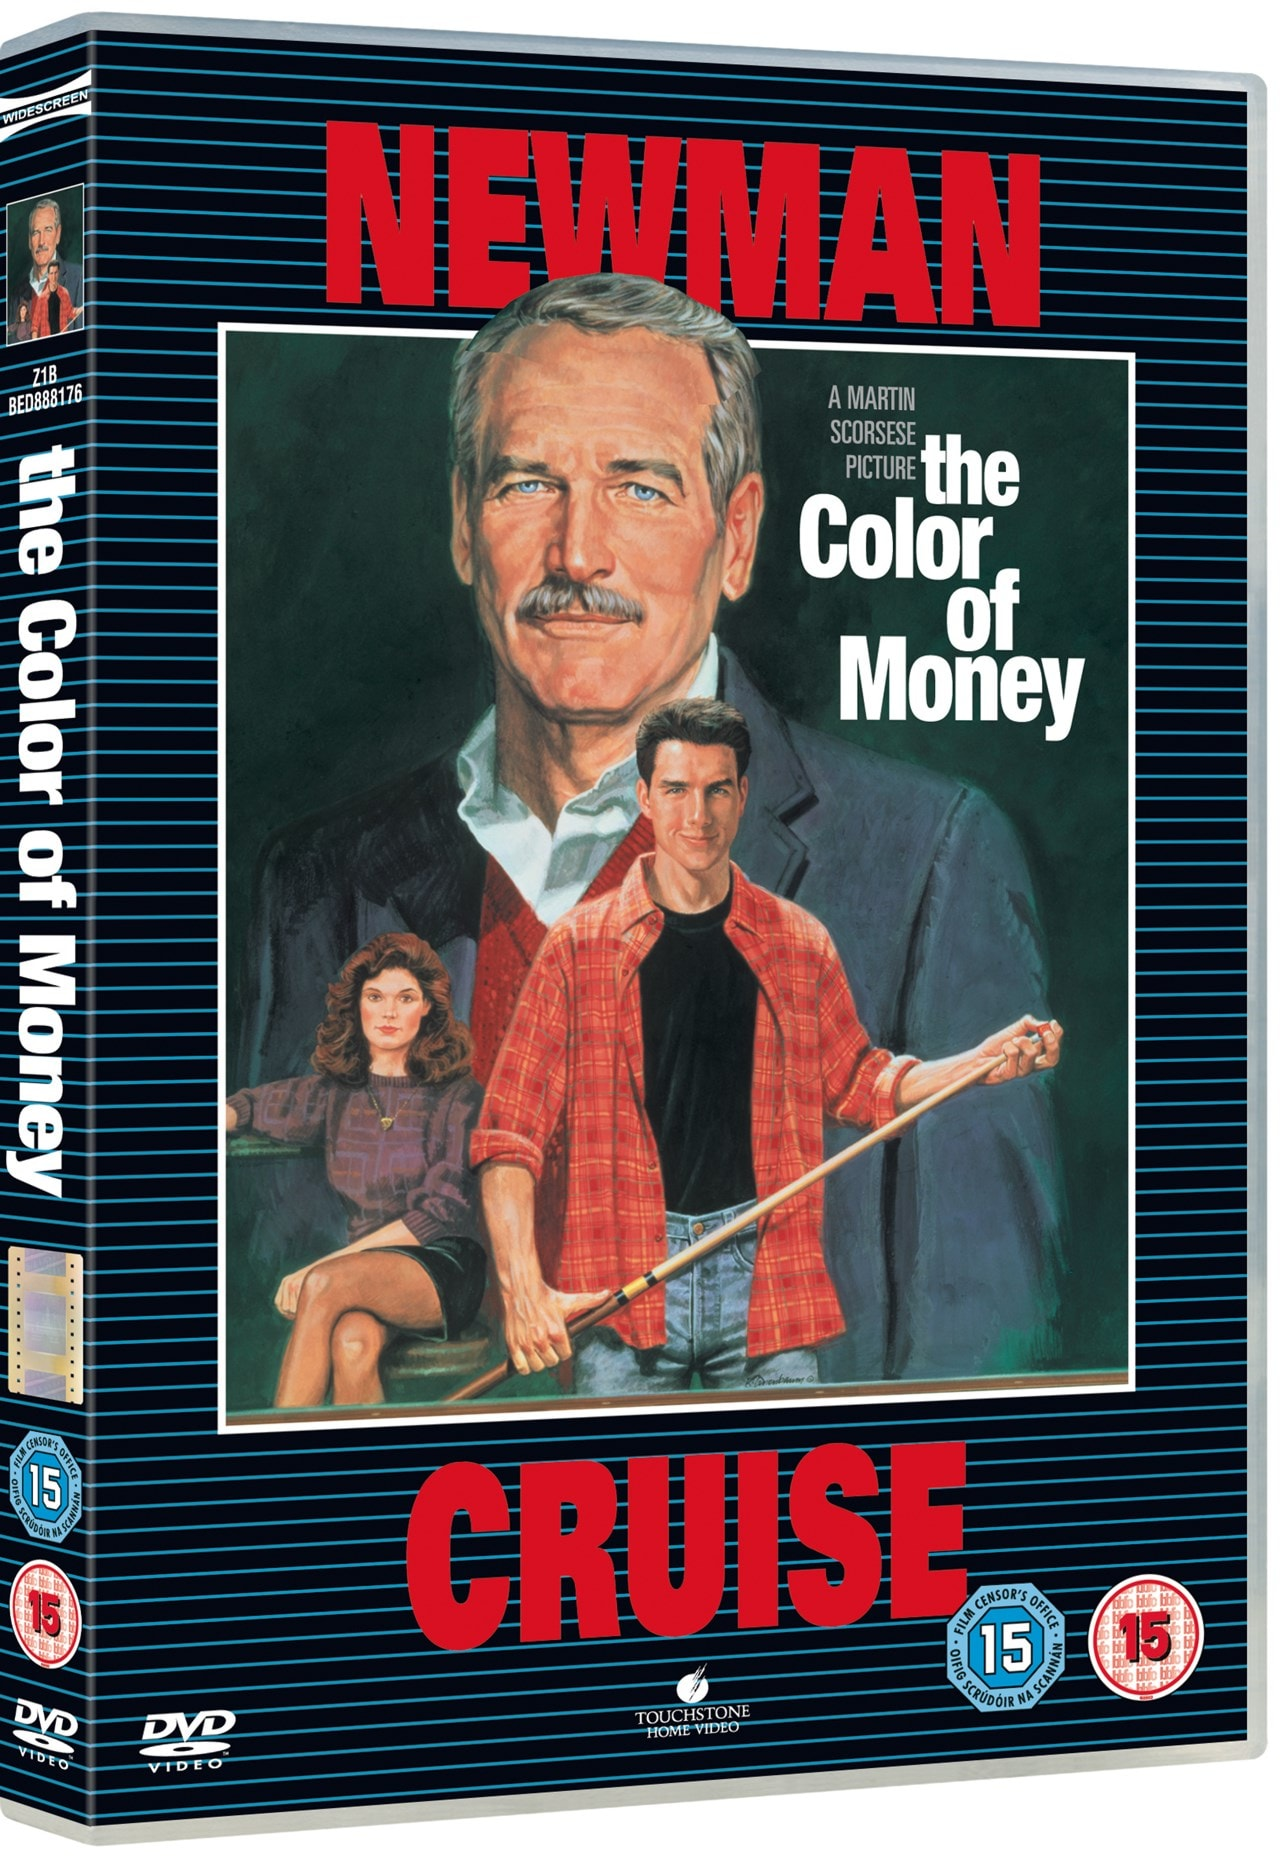 The Color of Money - 2